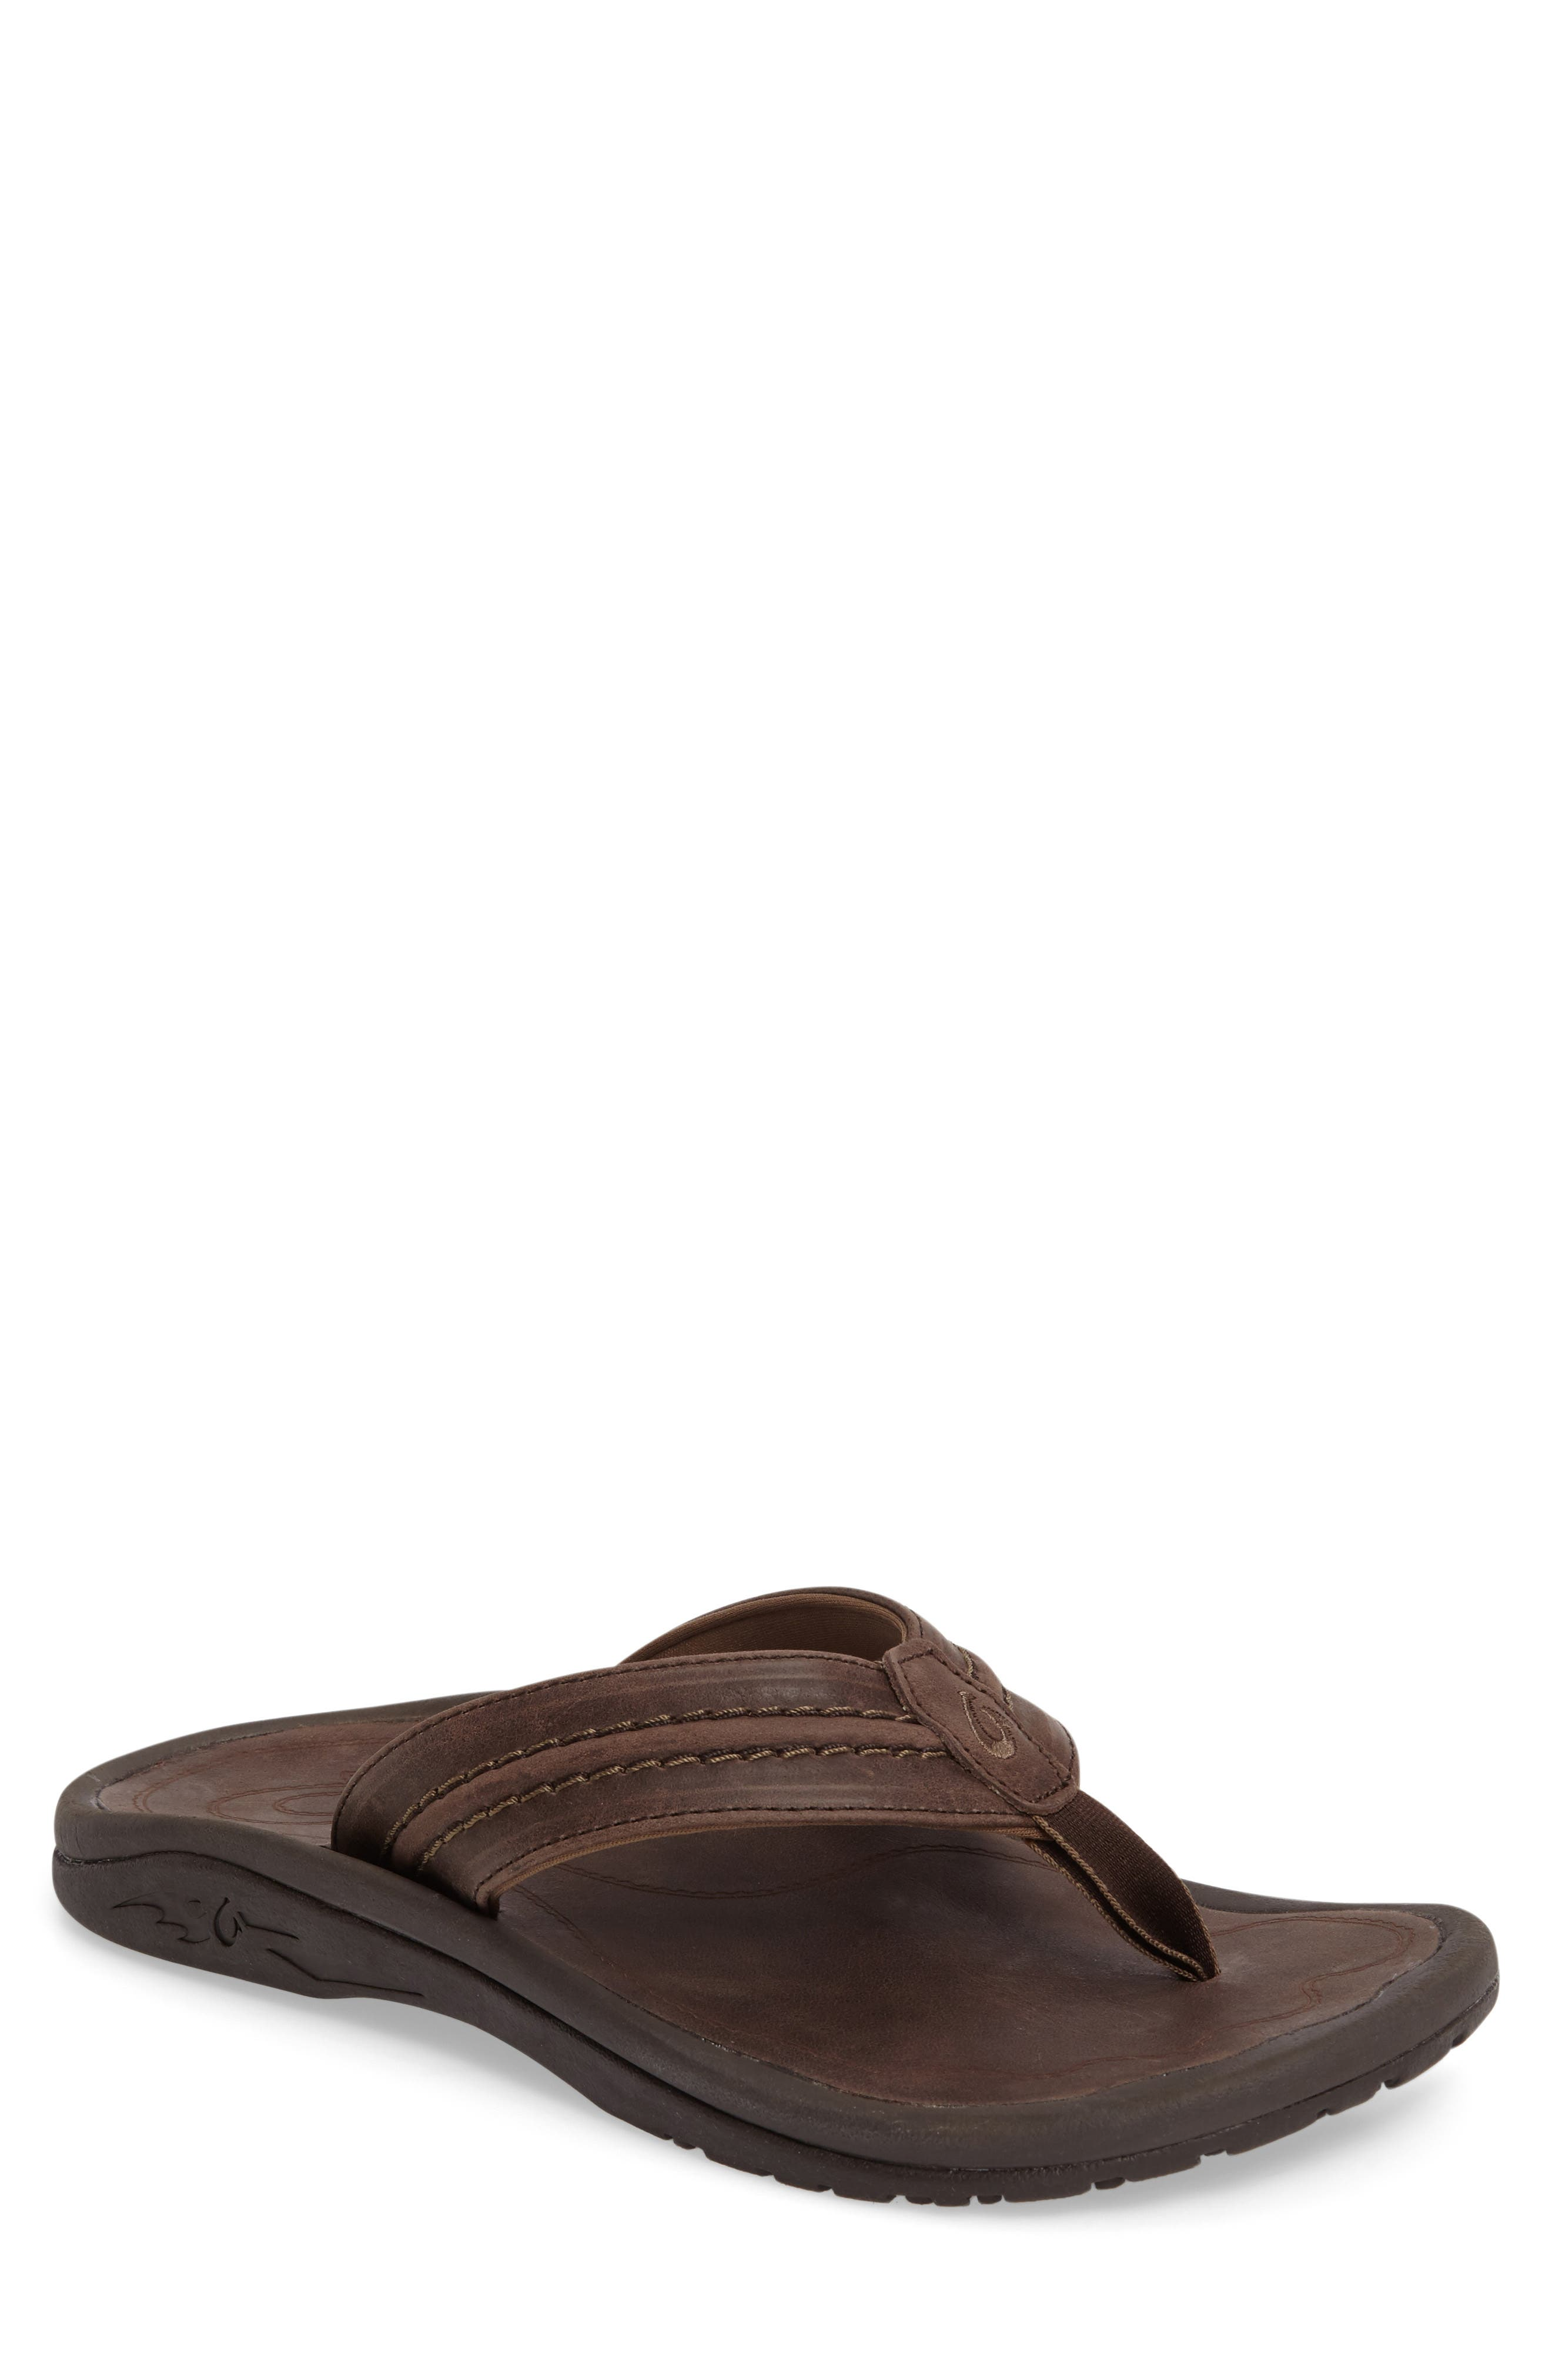 Hokua Flip Flop,                         Main,                         color, DARK WOOD LEATHER